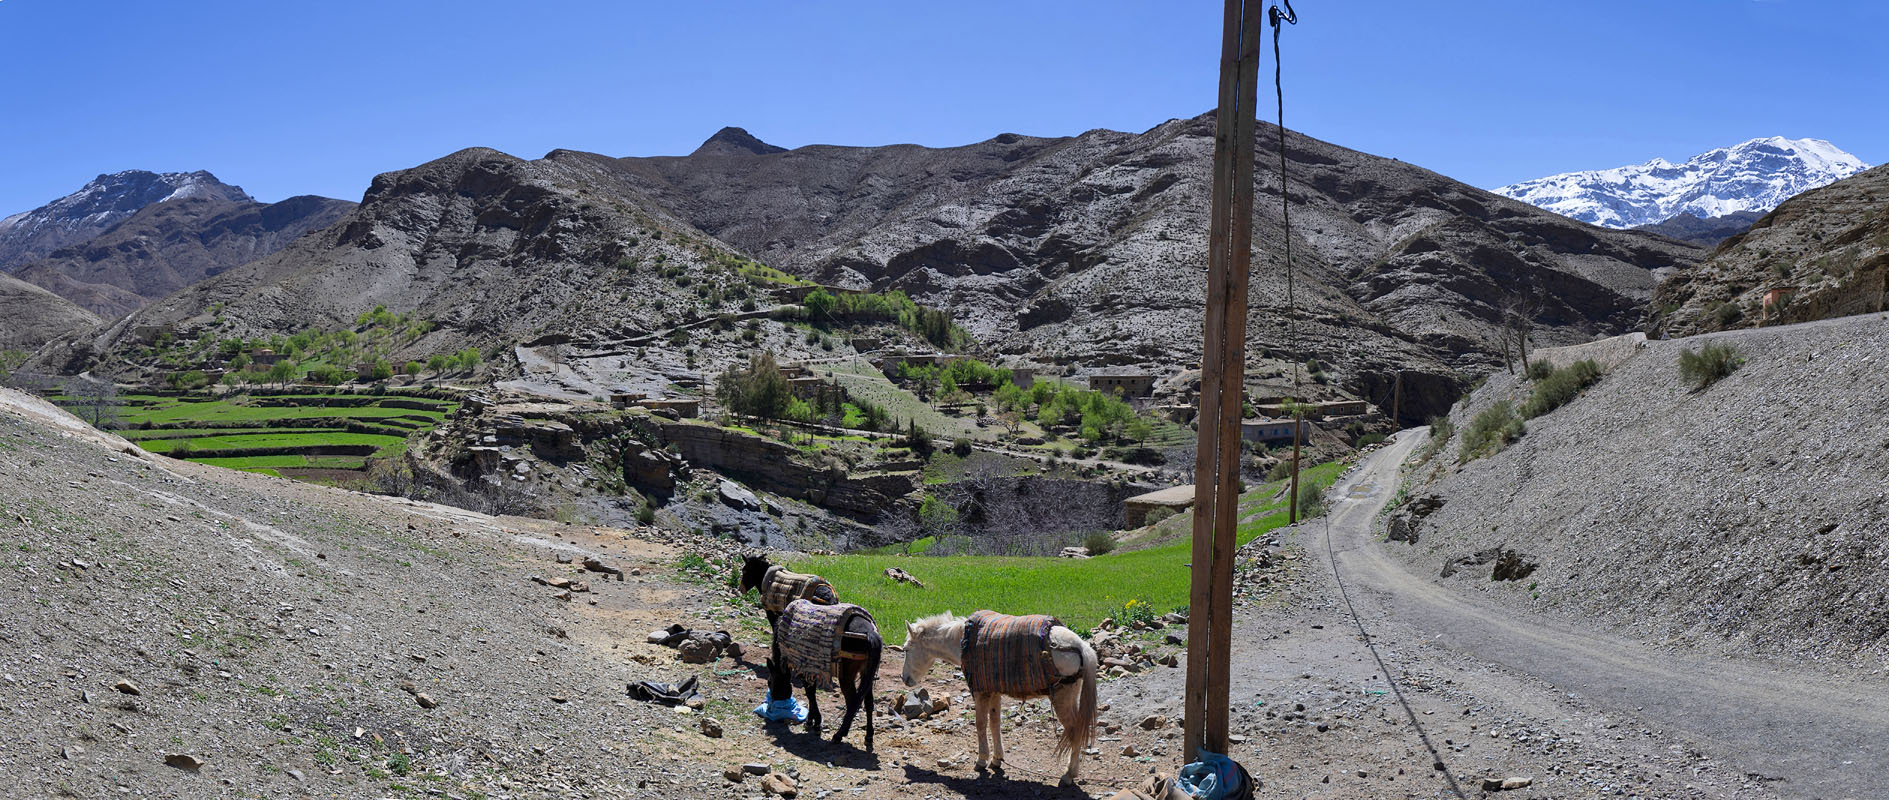 In the Atlas mountains - Route from Ouarzazate to Marrakech